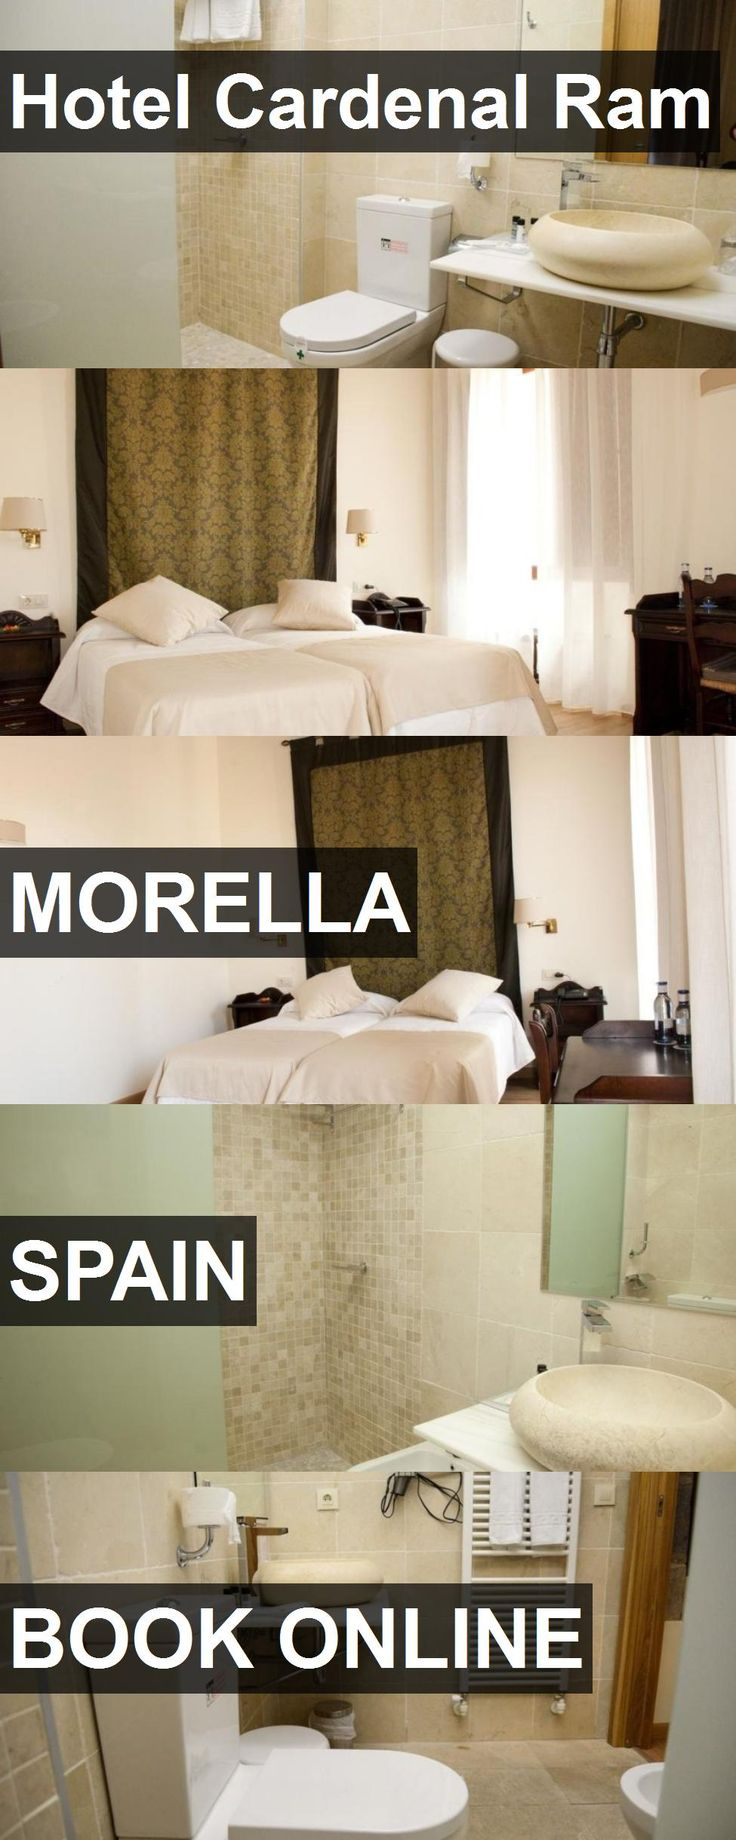 Hotel Hotel Cardenal Ram in Morella, Spain. For more information, photos, reviews and best prices please follow the link. #Spain #Morella #hotel #travel #vacation